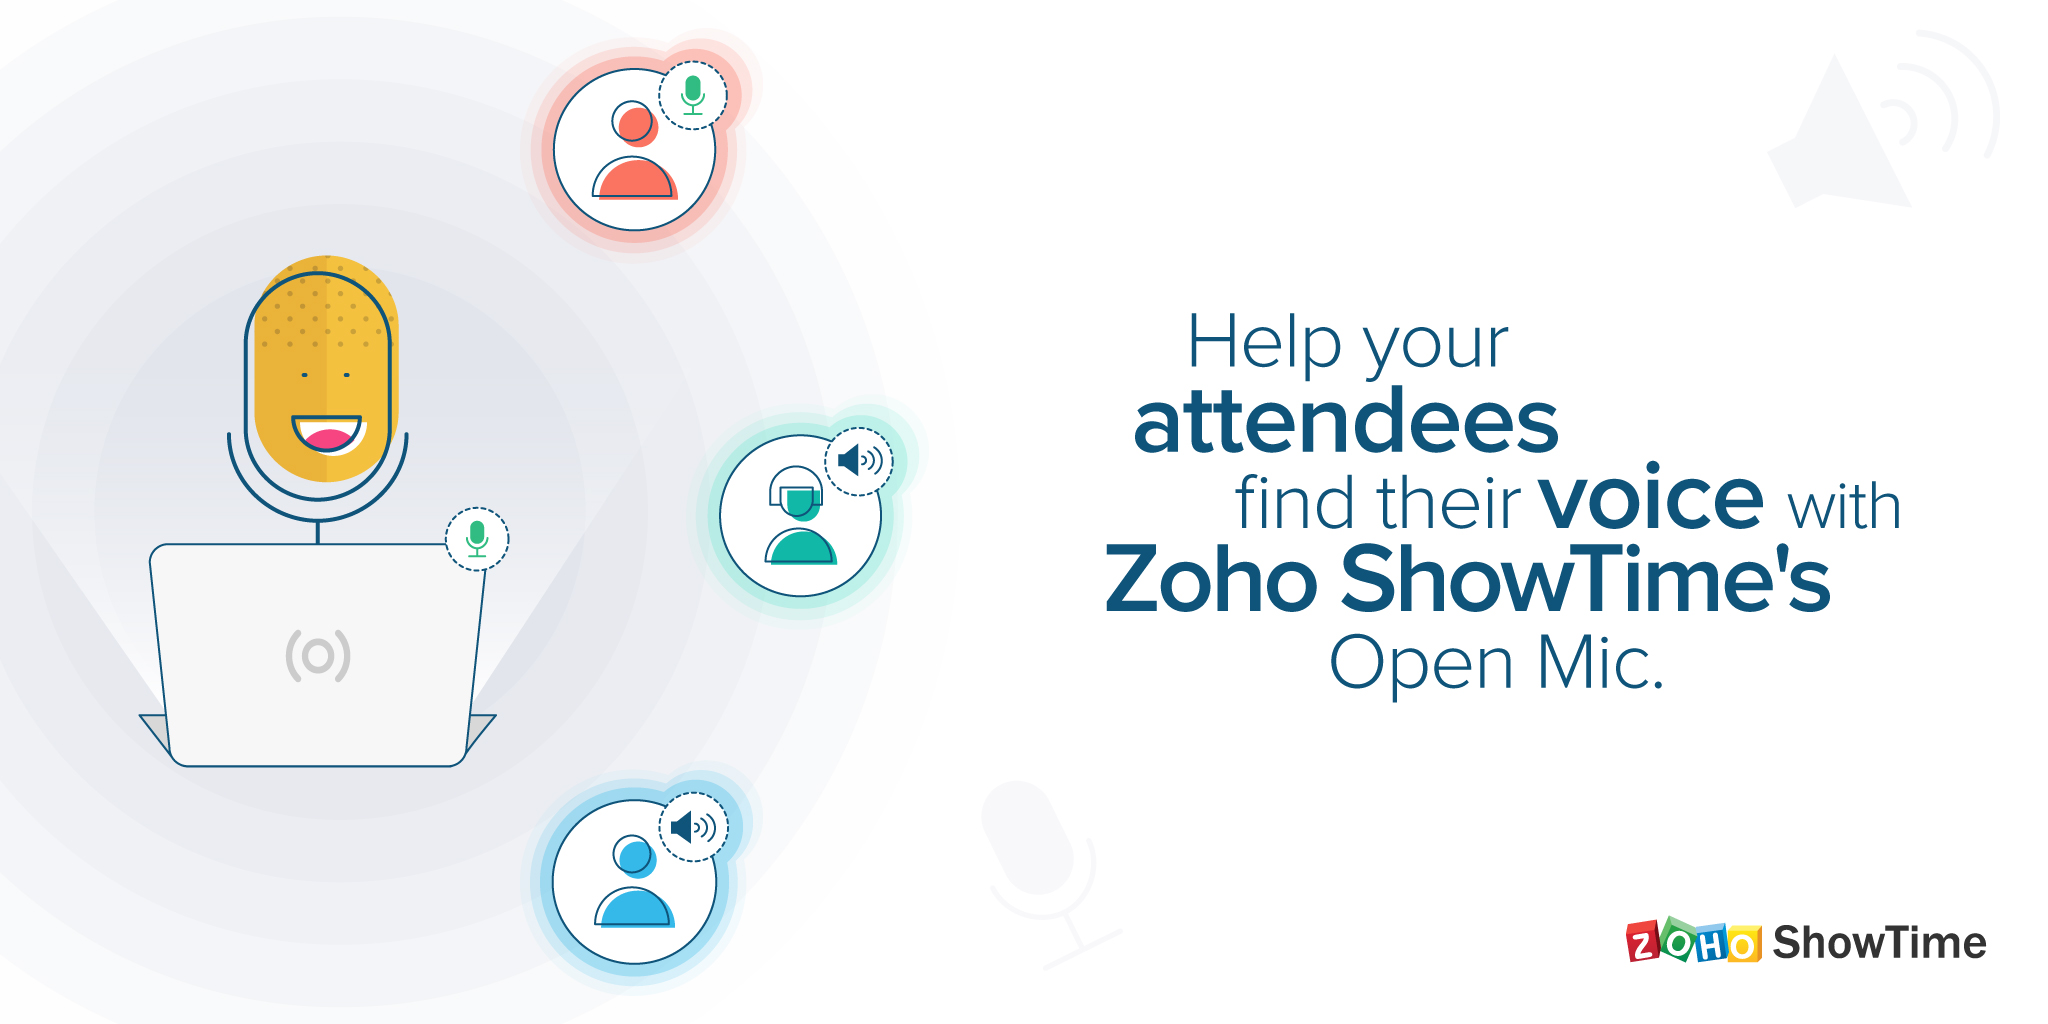 Introducing Zoho ShowTime's Open Mic: Let your learners have their say!